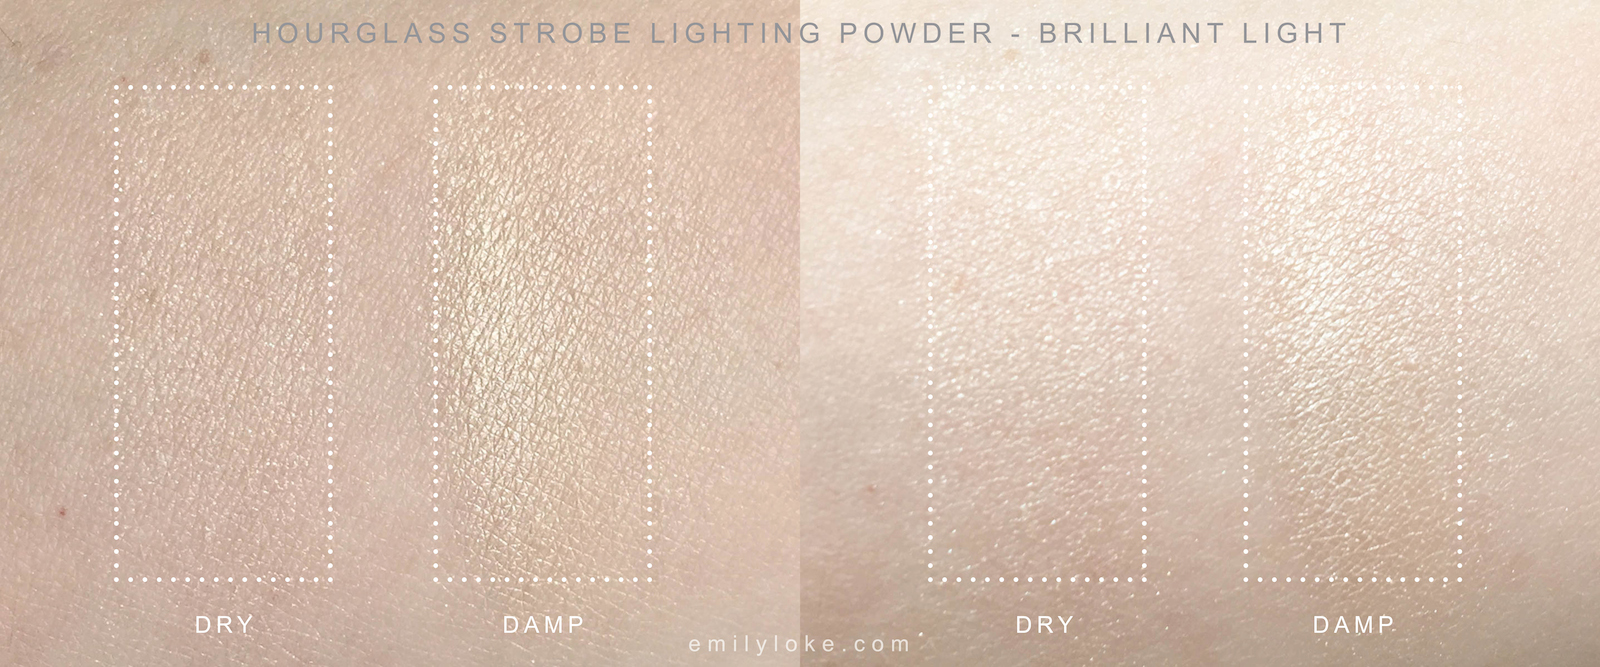 Hourglass Strobe Lighting Powder Brilliant Swatches